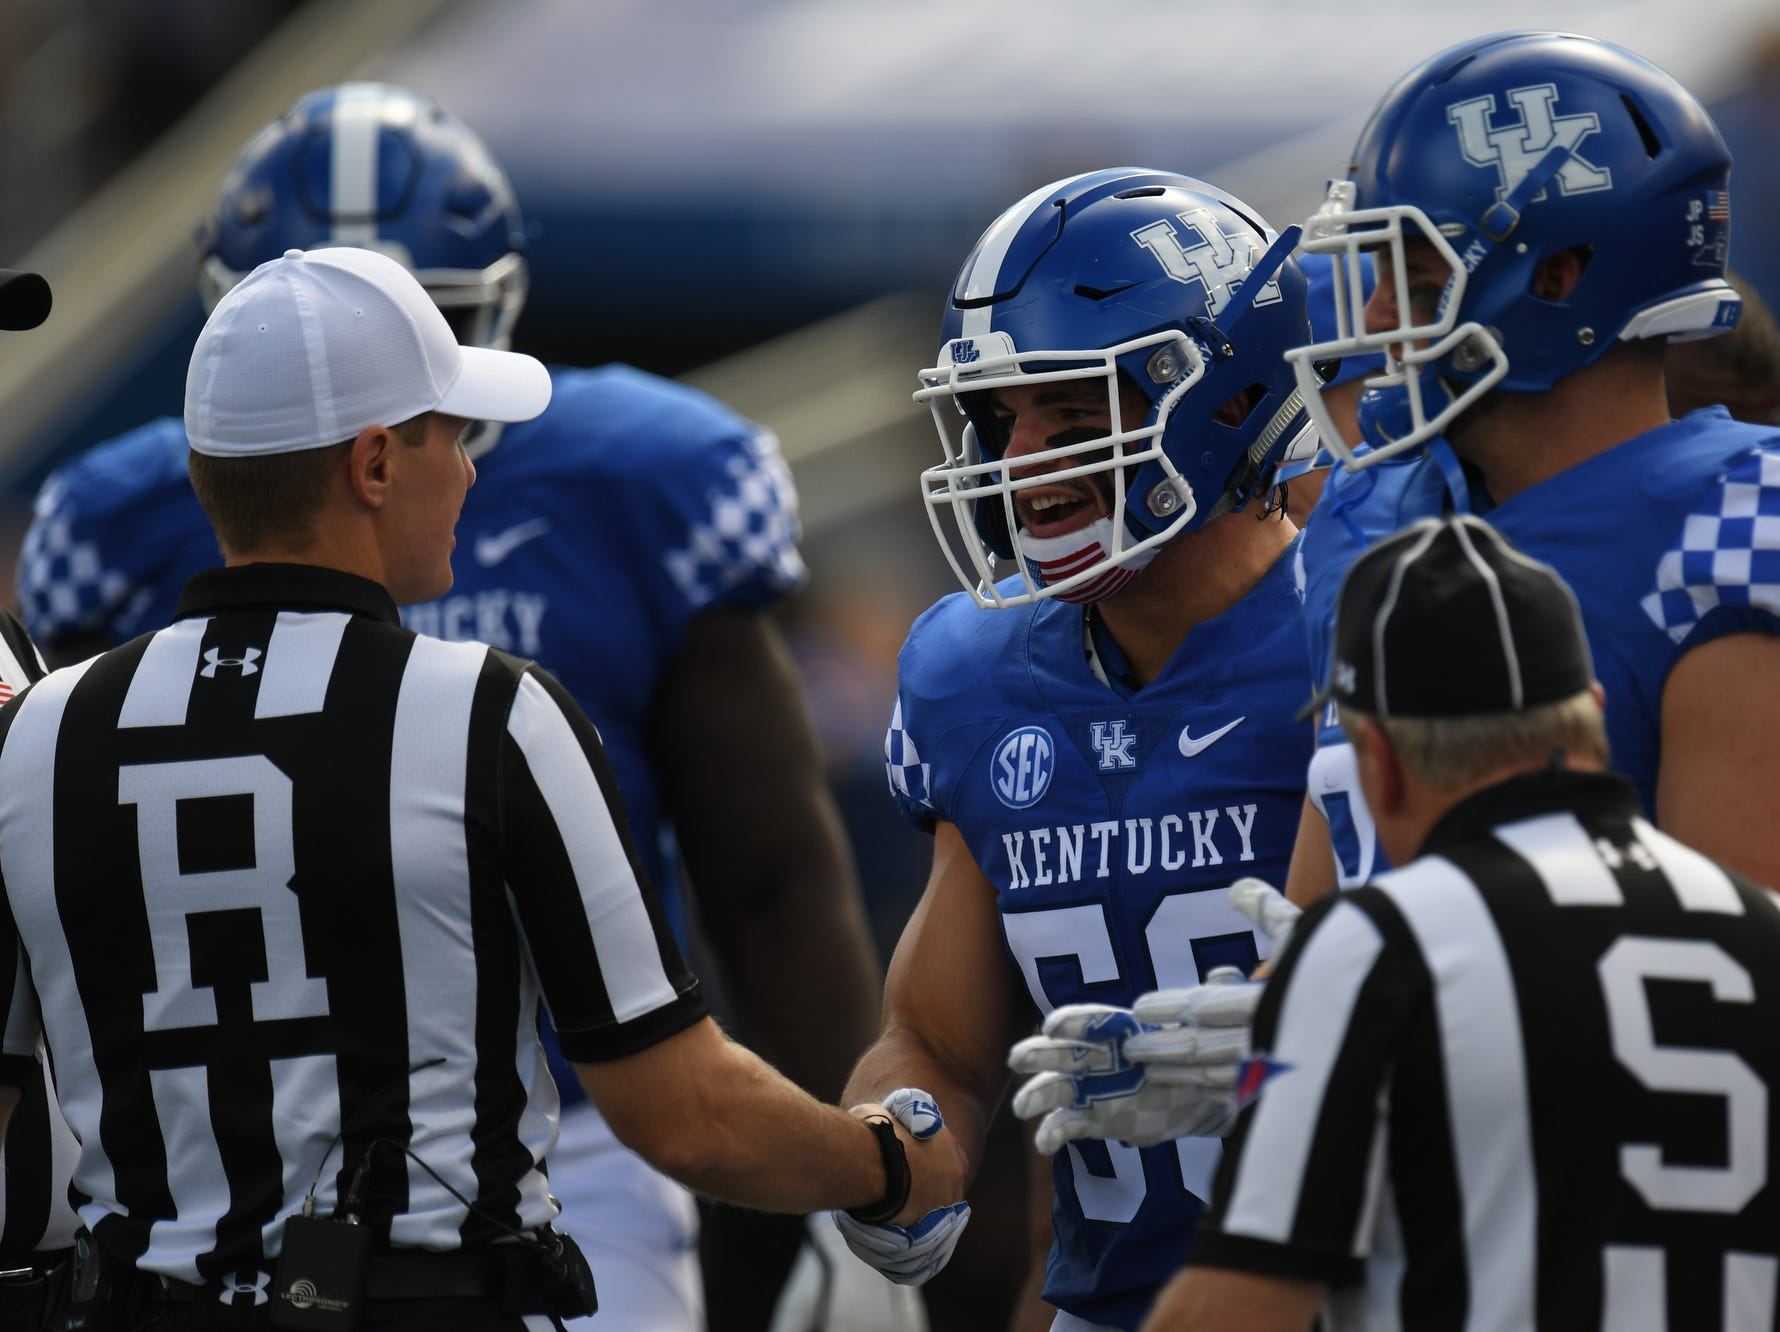 UK captain Kash Daniel shakes hands with the referee during the University of Kentucky football game against Murray State at Kroger Field in Lexington, Kentucky on Saturday, September 15, 2018.